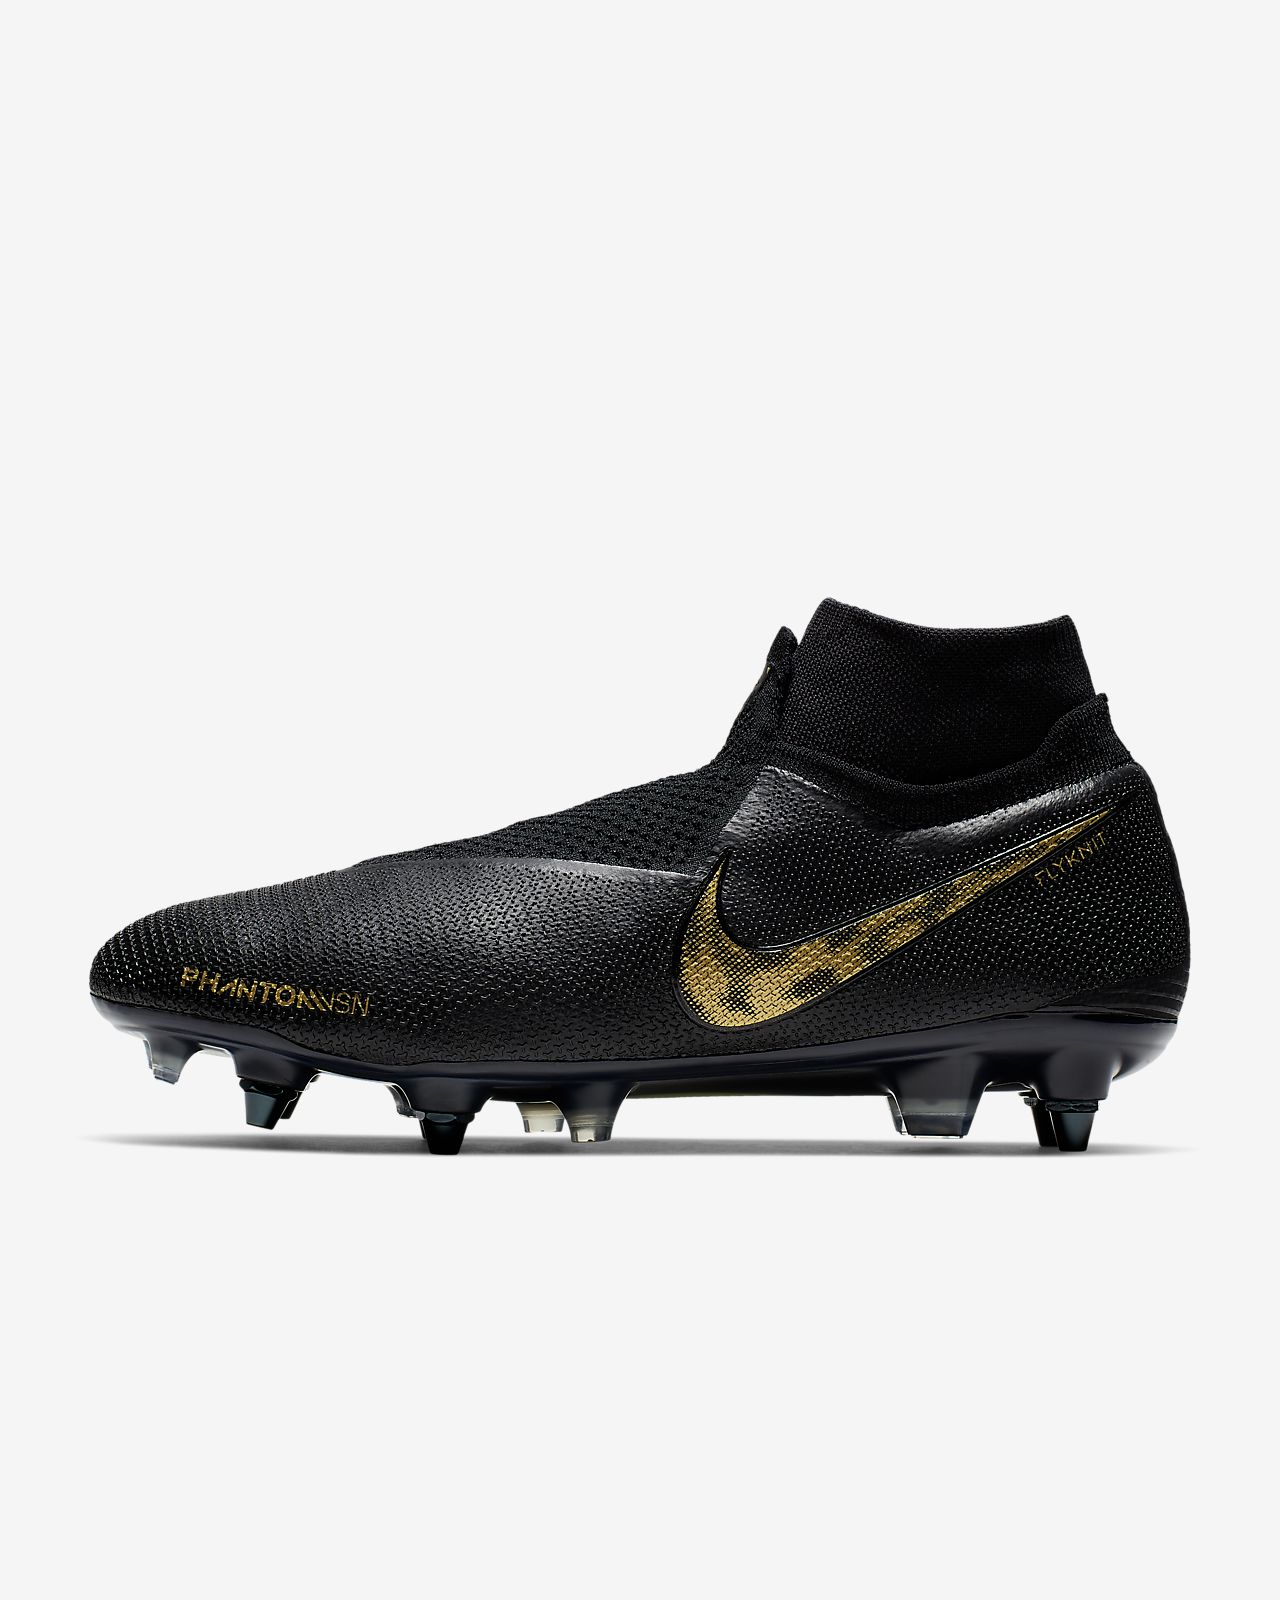 bfcf6042be83a ... Nike Phantom Vision Elite Dynamic Fit Anti-Clog SG-PRO Botas de fútbol